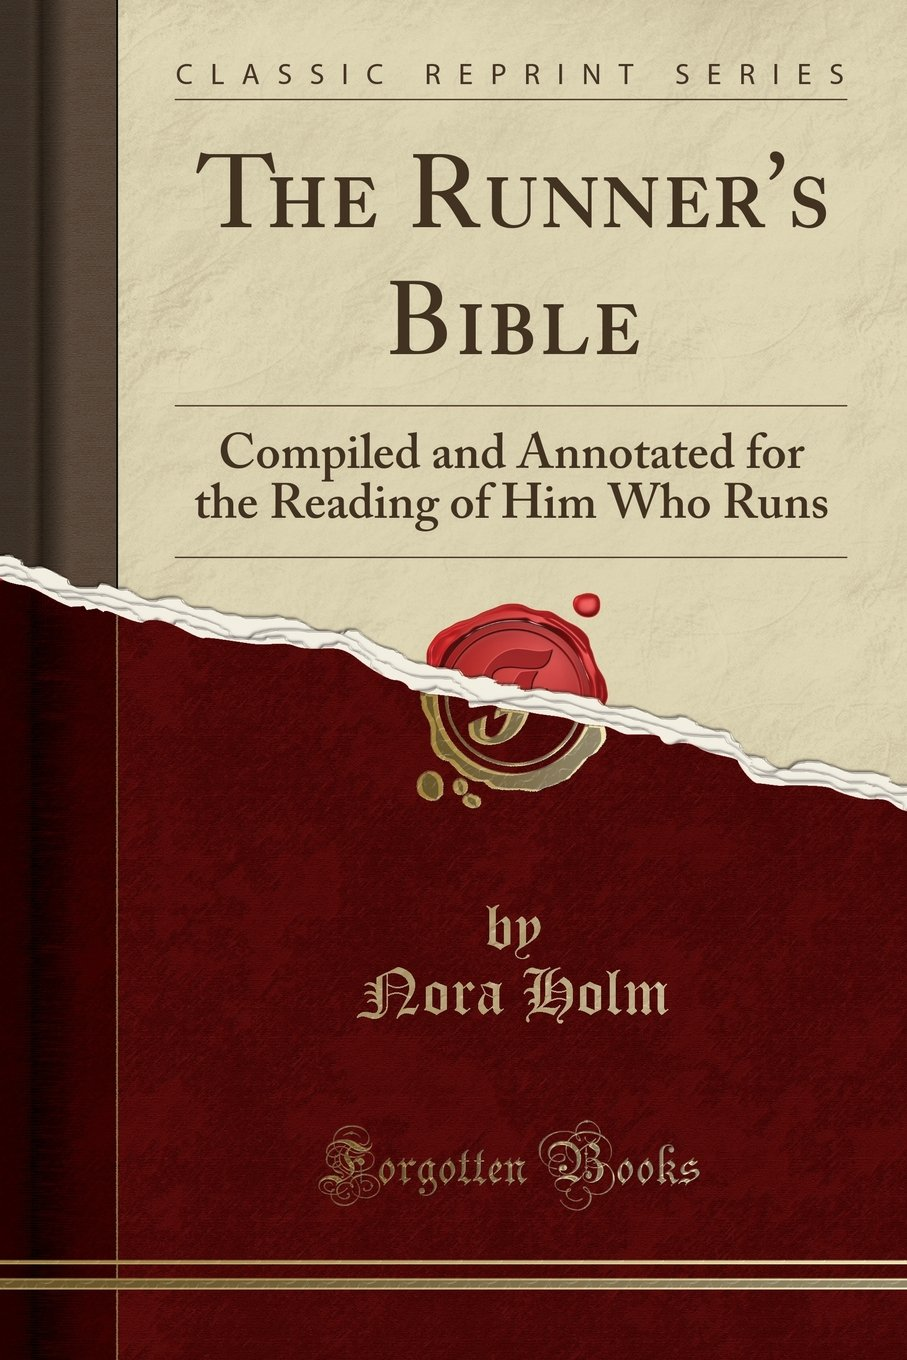 The Runner's Bible: Compiled and Annotated for the Reading of Him Who Runs (Classic Reprint) PDF